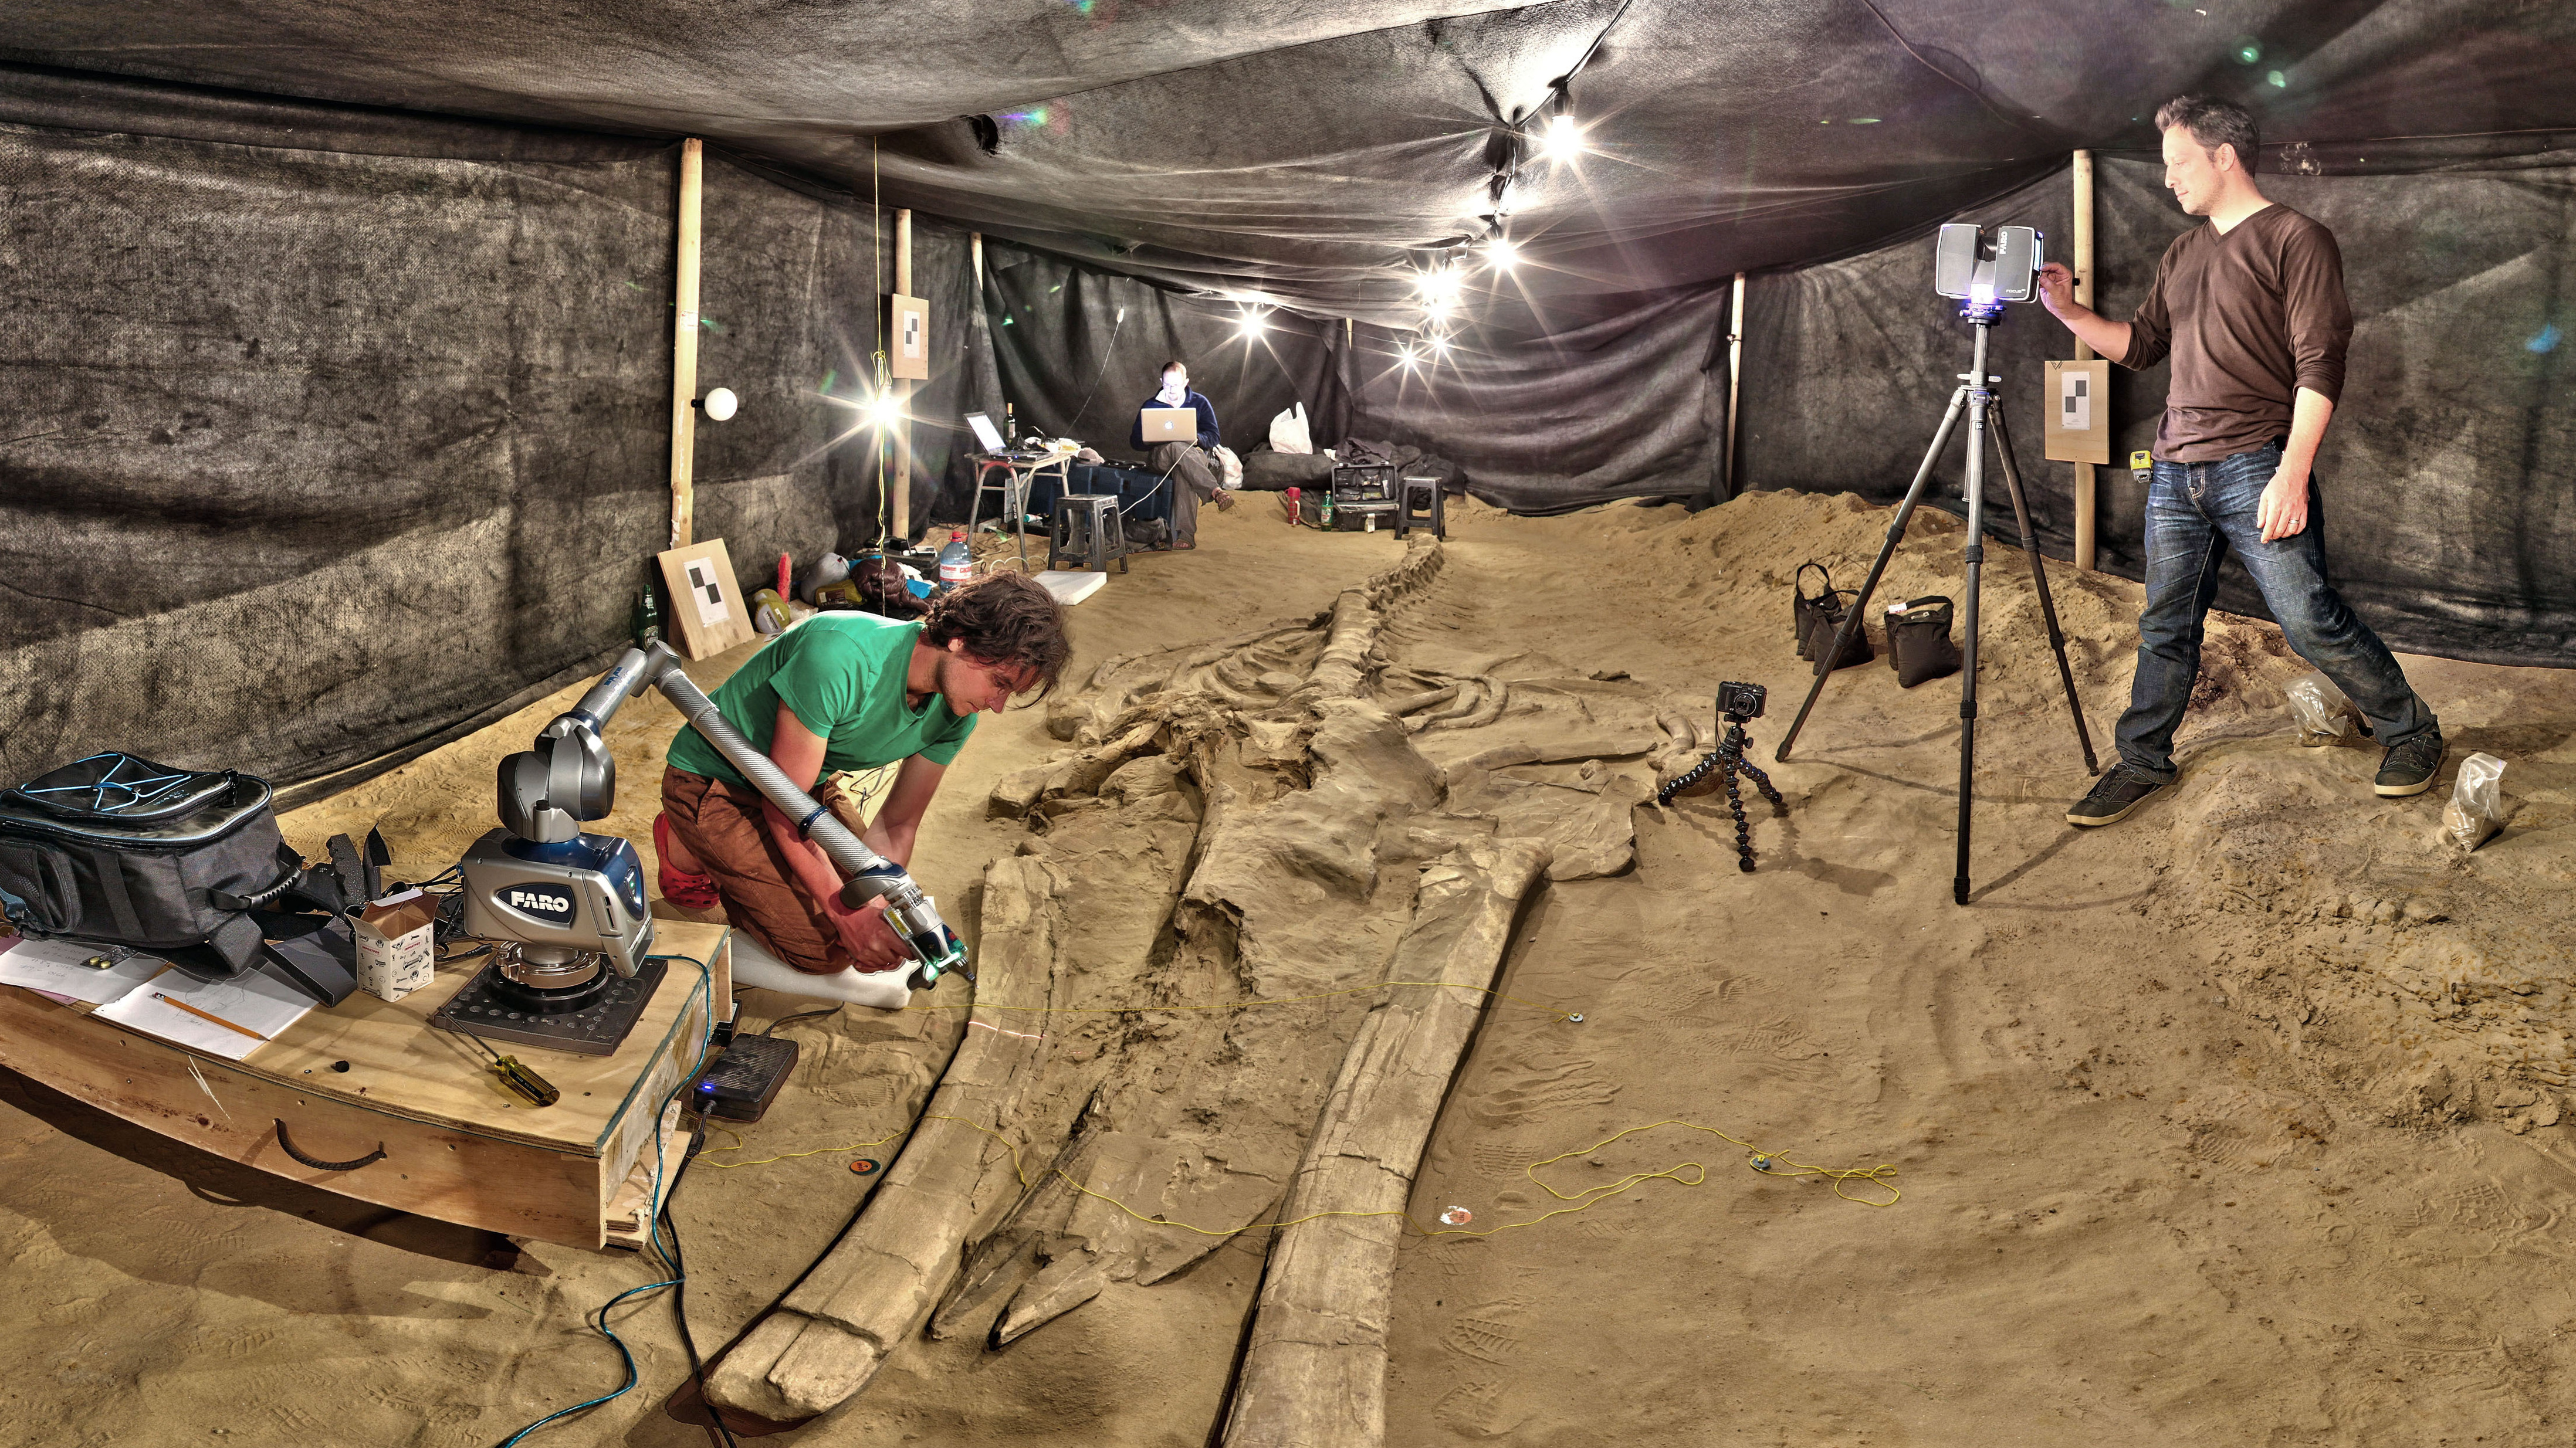 Adam Metallo, left, and Vince Rossi from the Smithsonian's Digitization Program use a high-resolution laser arm and medium-range laser scanners to document one of the most complete fossil whales at the site in Chile.